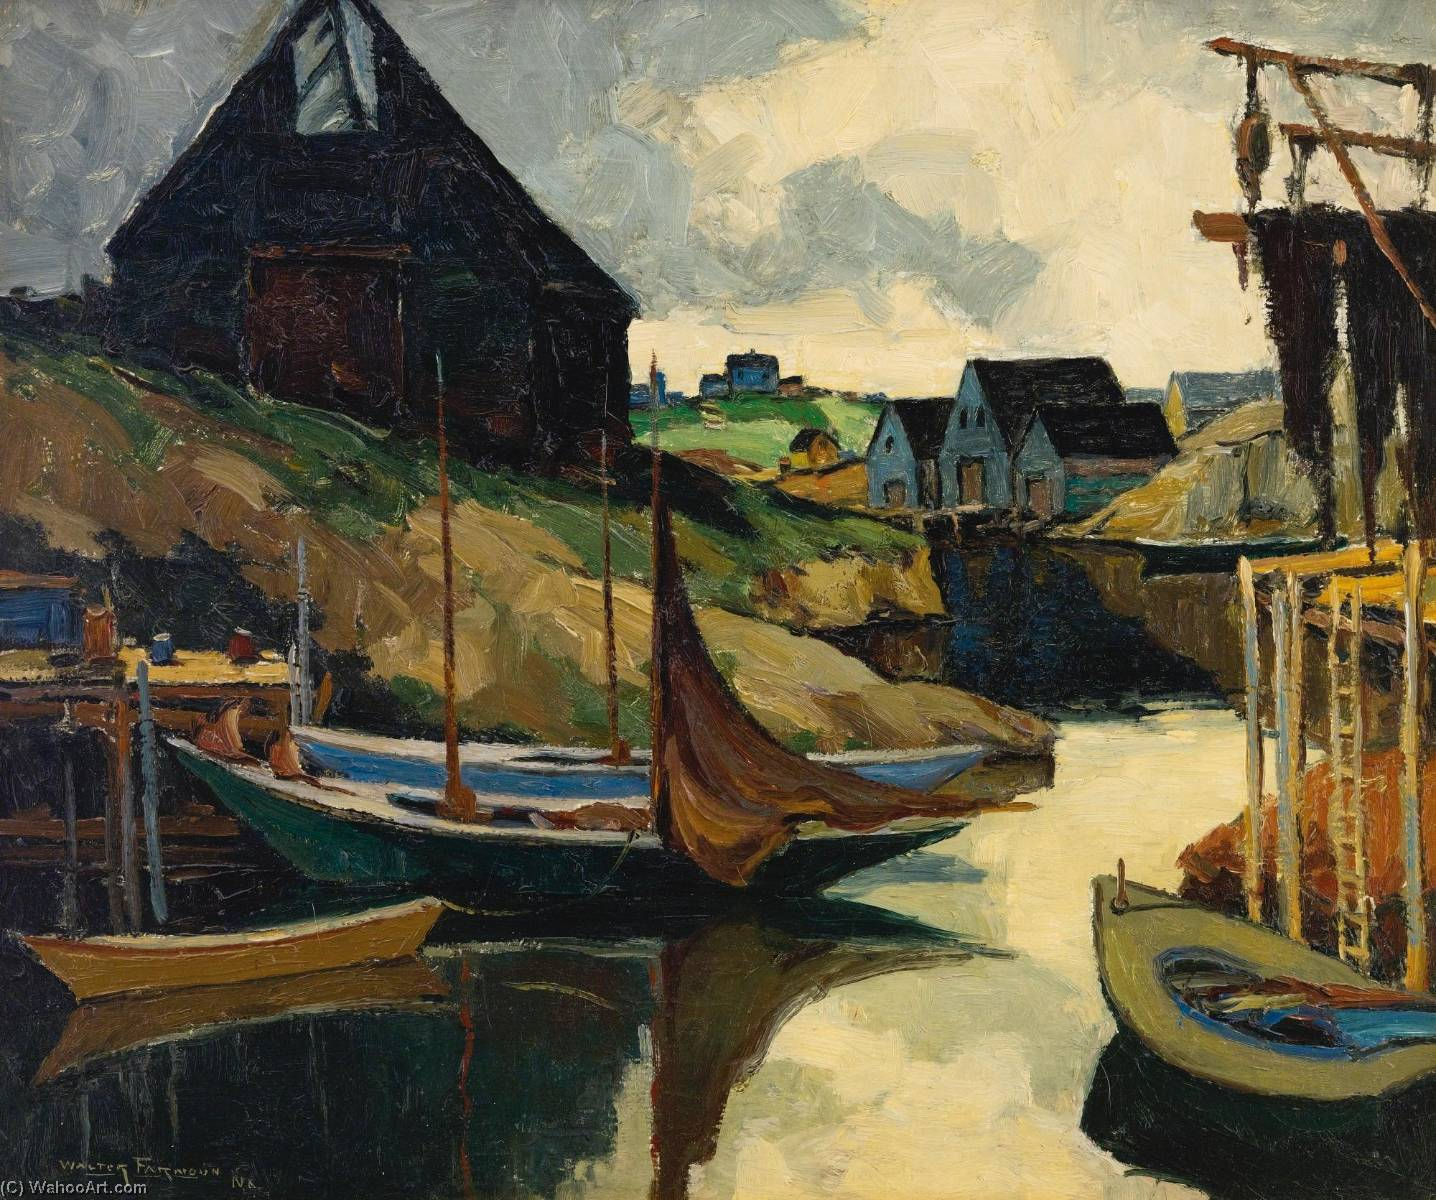 Wikioo.org - The Encyclopedia of Fine Arts - Painting, Artwork by Walter Farndon - Safe Harbor